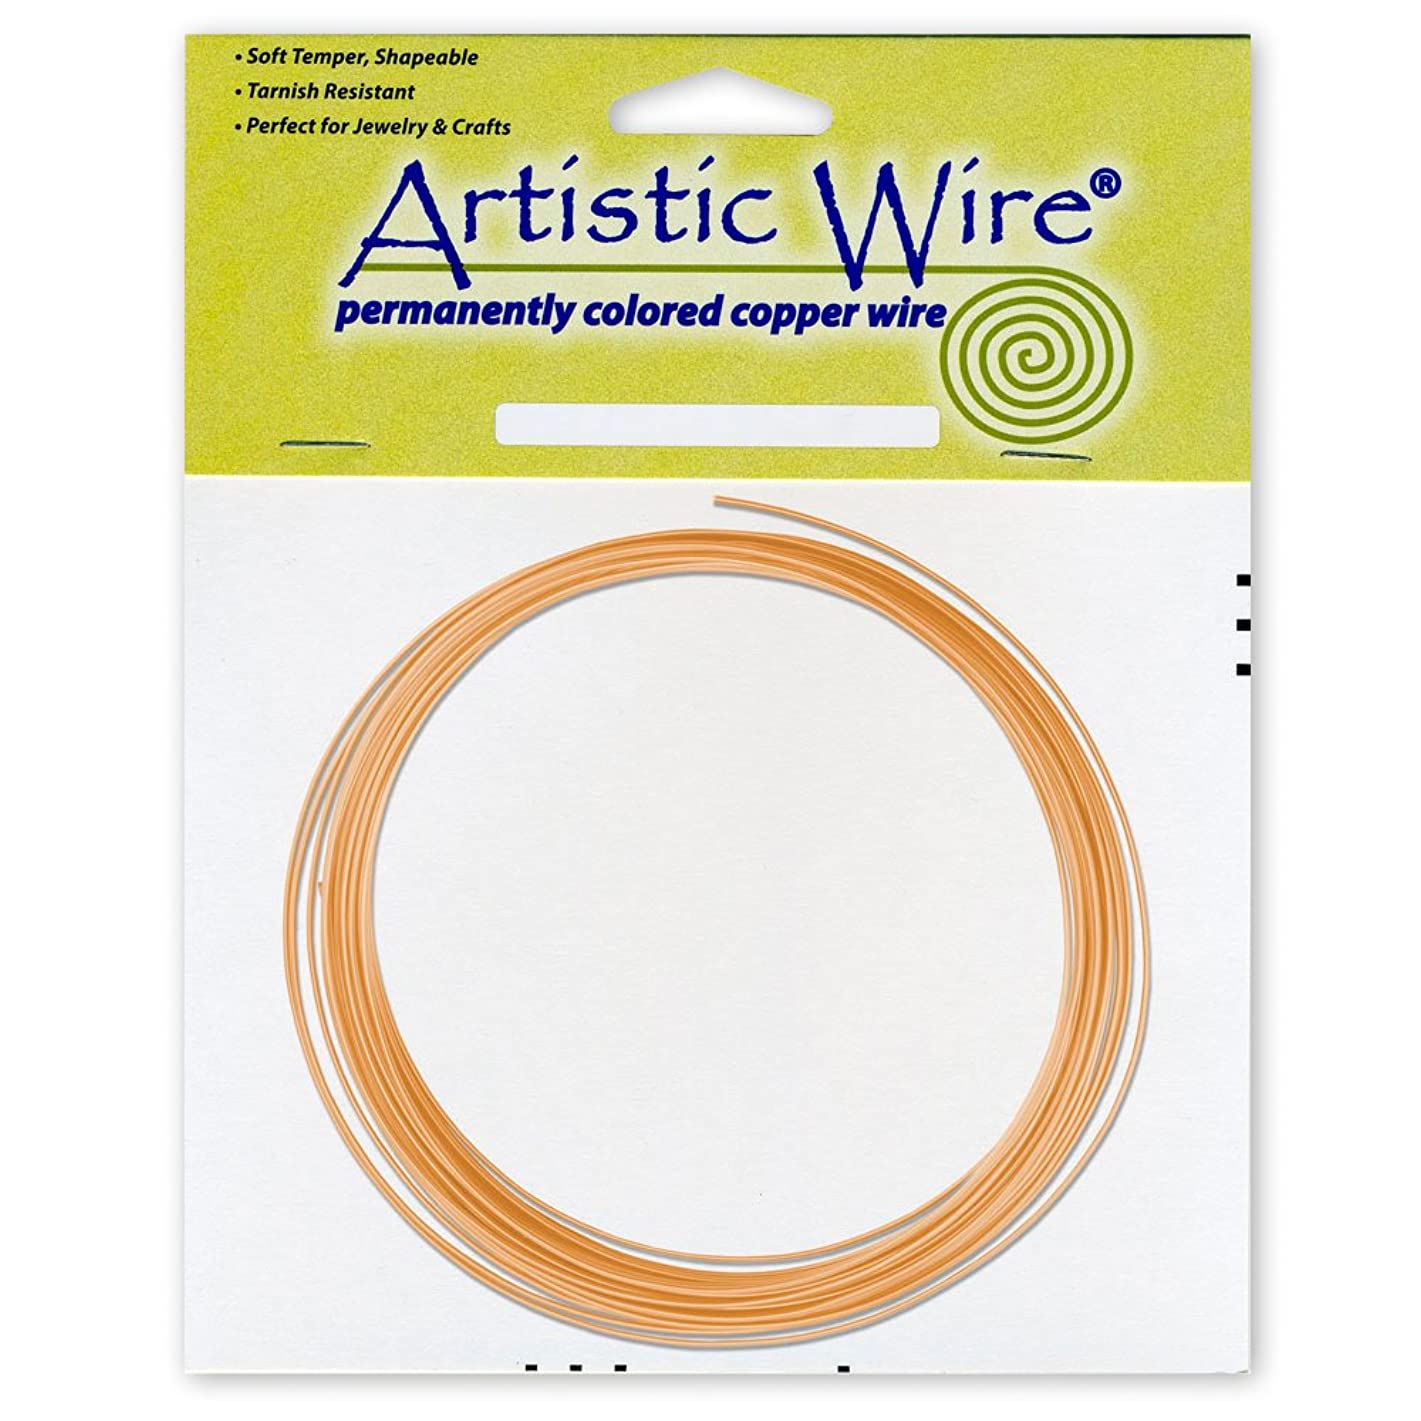 Beadalon AWB-12-BC-25FT Artistic Wire 12-Gauge Bare Copper Coil Wire, 25-Feet